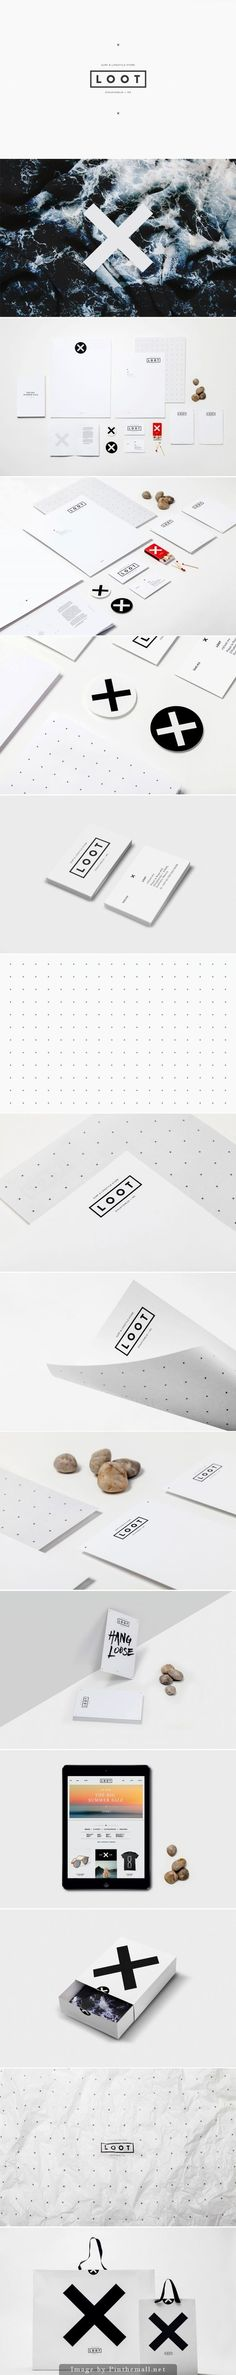 Loot branding corporate identity stationary minimal logo webdesign shopping bag wrapping paper business card sticker letterhead pattern black and white b&w graphic design: